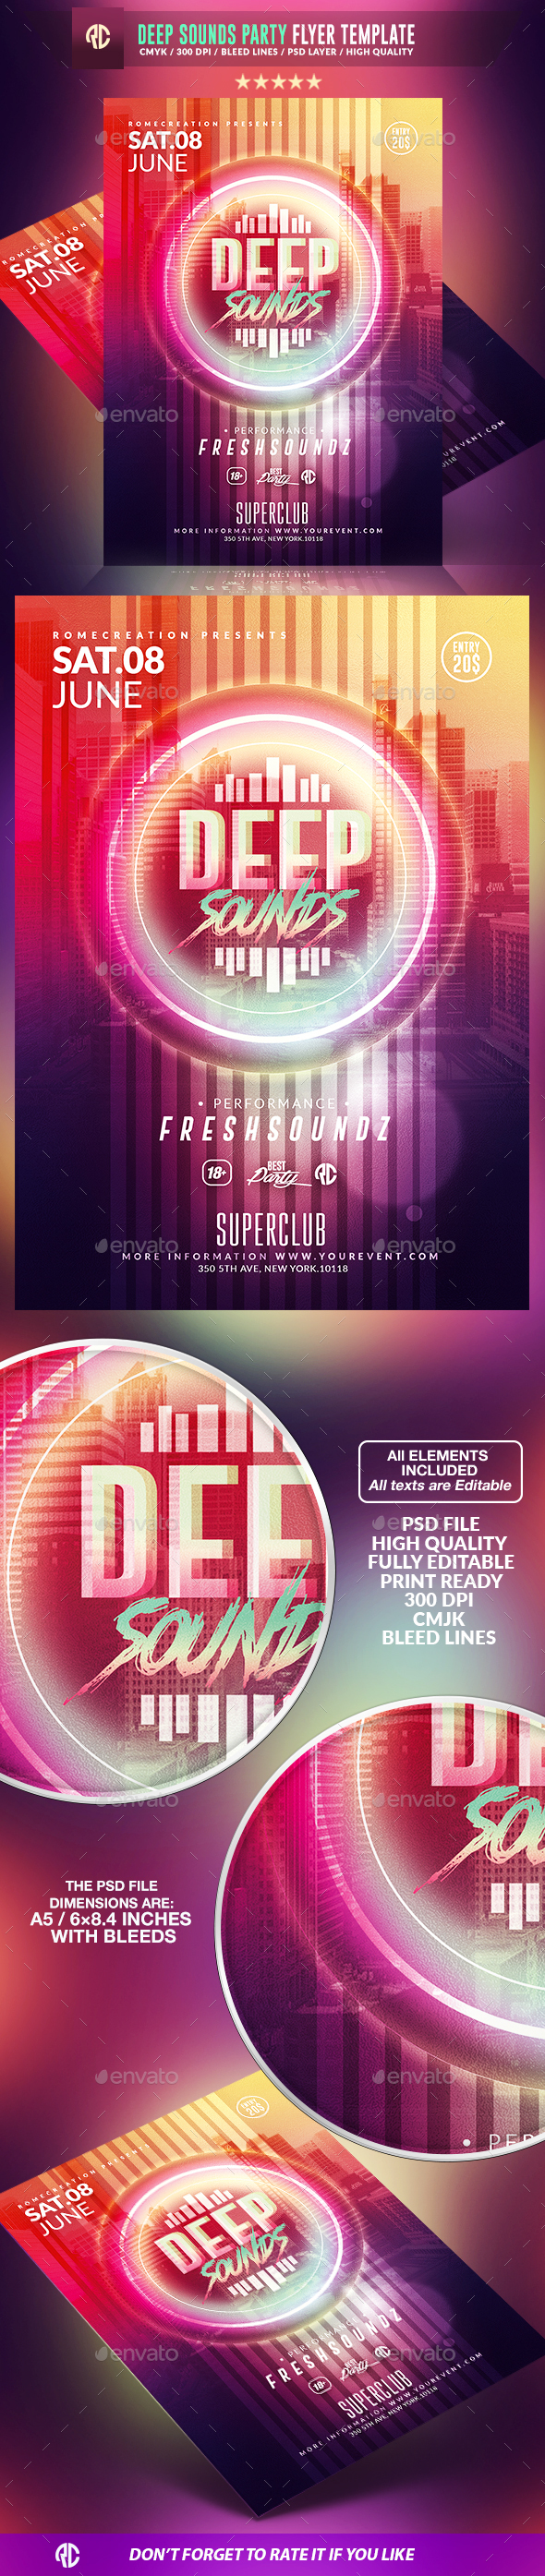 Deep Sounds Party | Psd Flyer Template - Events Flyers